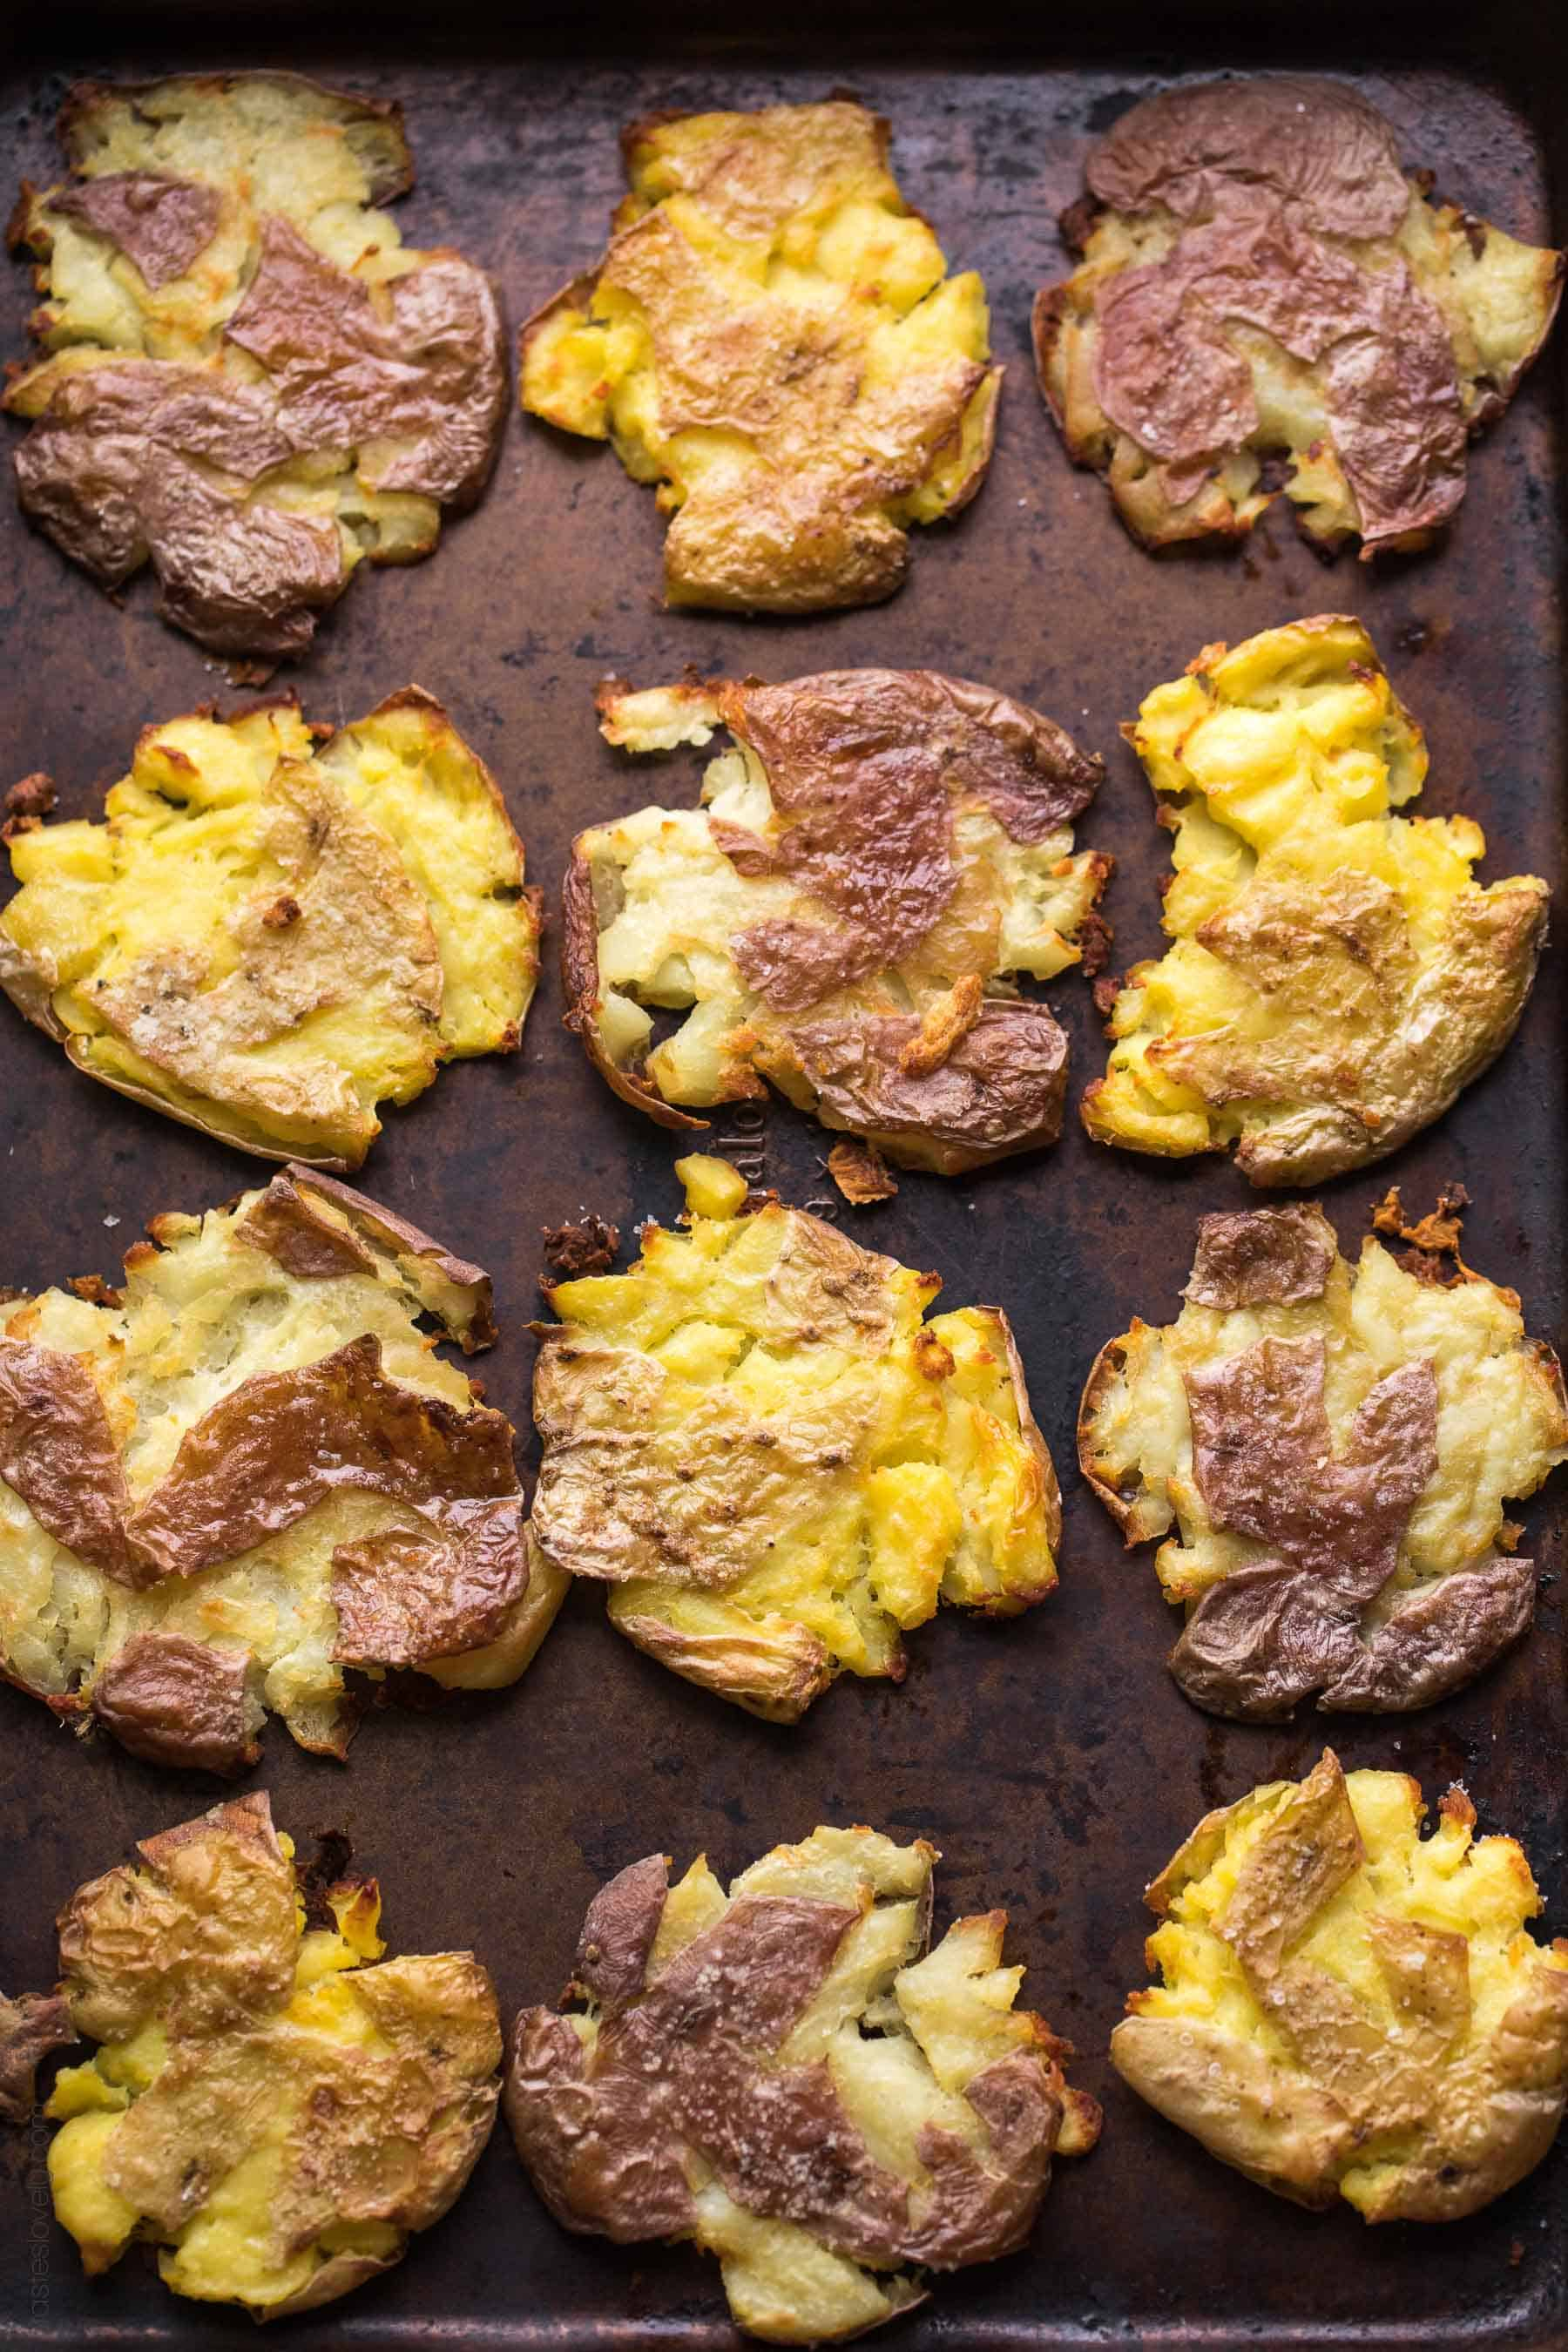 Paleo & Whole30 Crispy Smashed Potatoes - soft and fluffy on the outside, crispy and golden brown on the outside. The most delicious side dish recipe! Gluten free, grain free, dairy free, sugar free, clean eating, vegan.